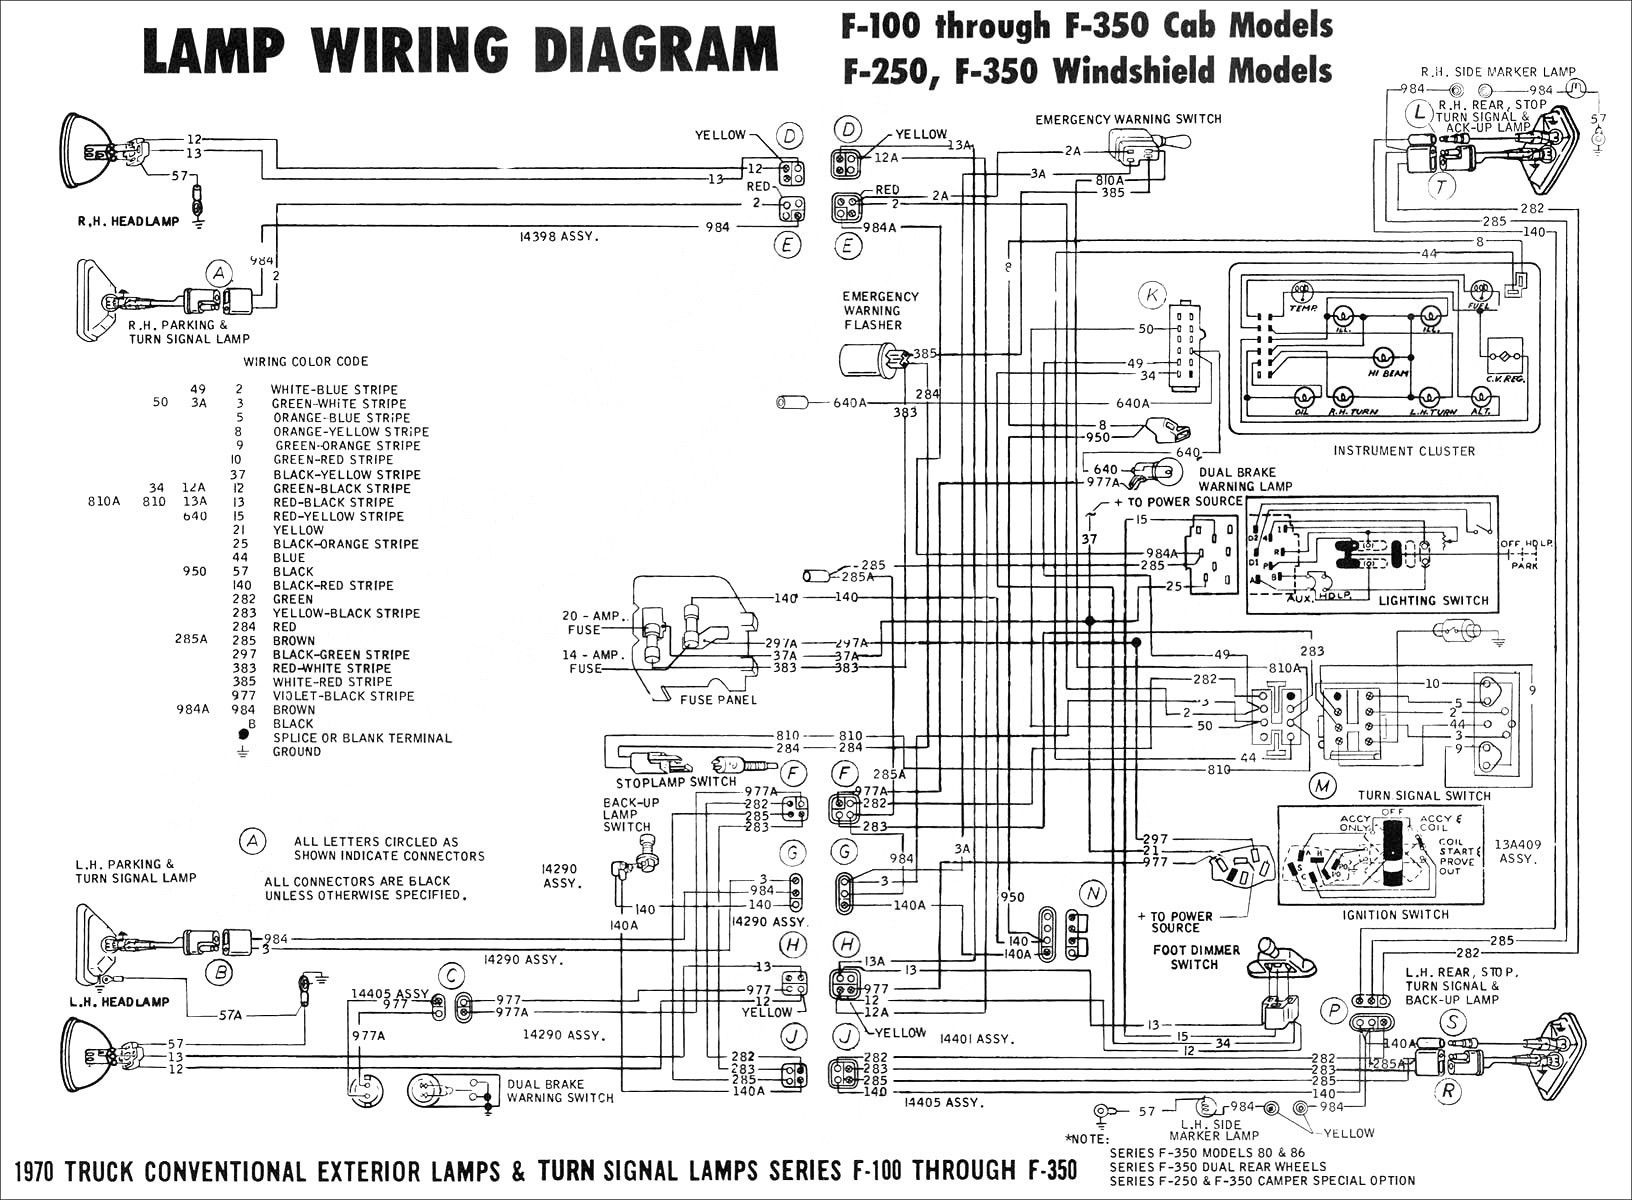 2005 Mustang Engine Diagram Trailer Wiring Diagram Electrical Wiring Diagram Circuit Diagram